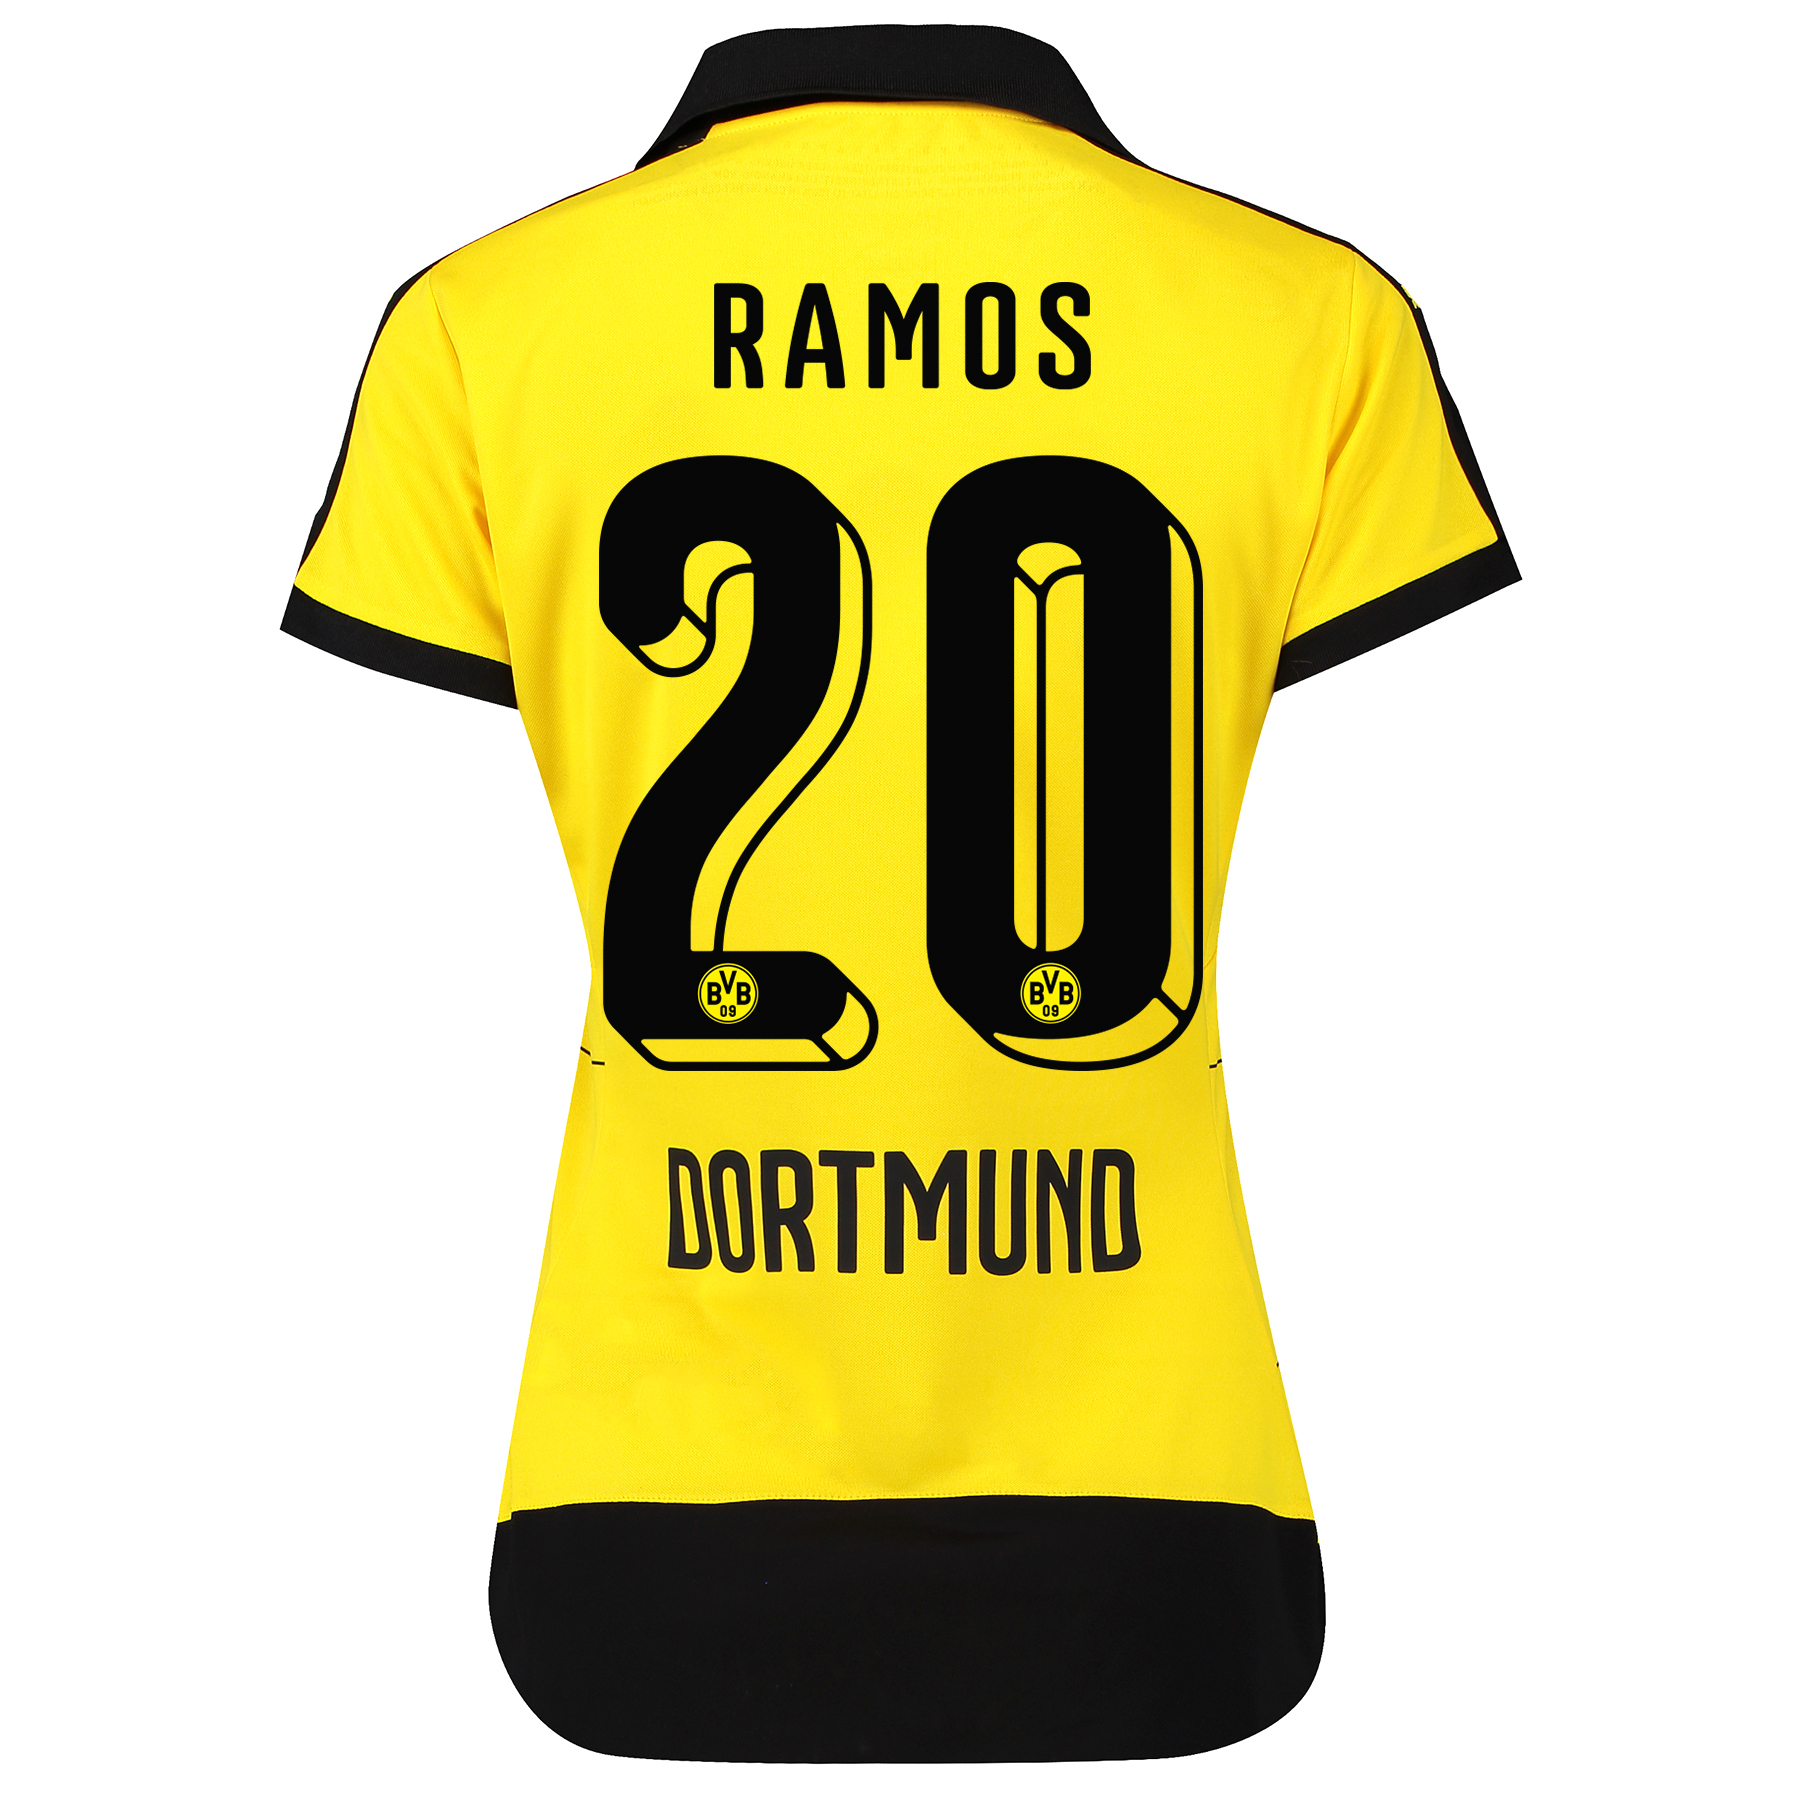 BVB Home Shirt 2015/16 – Womens with Sponsor Yellow with Adrian Ramos